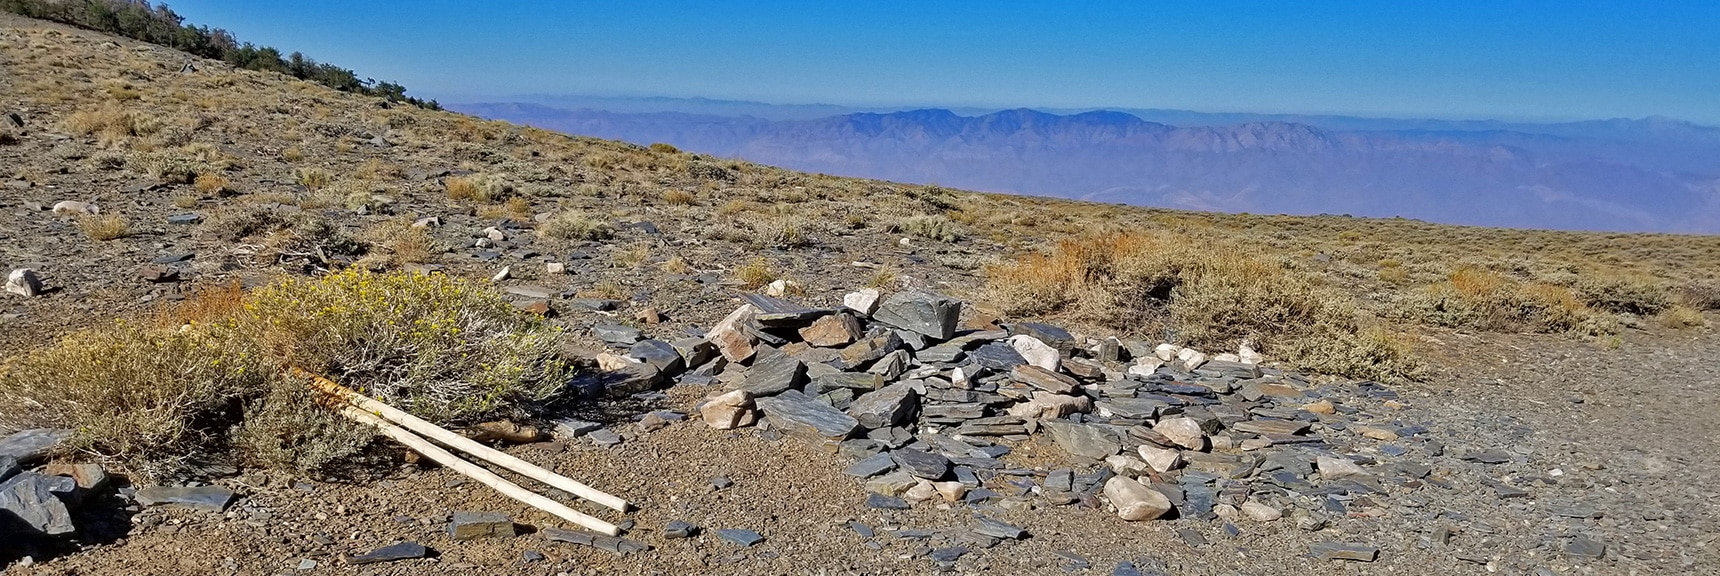 Arrival on the Upper Spine of the Panamint Range, Western Views Open Up   Telescope Peak Summit from Wildrose Charcoal Kilns Parking Area, Panamint Mountains, Death Valley National Park, California